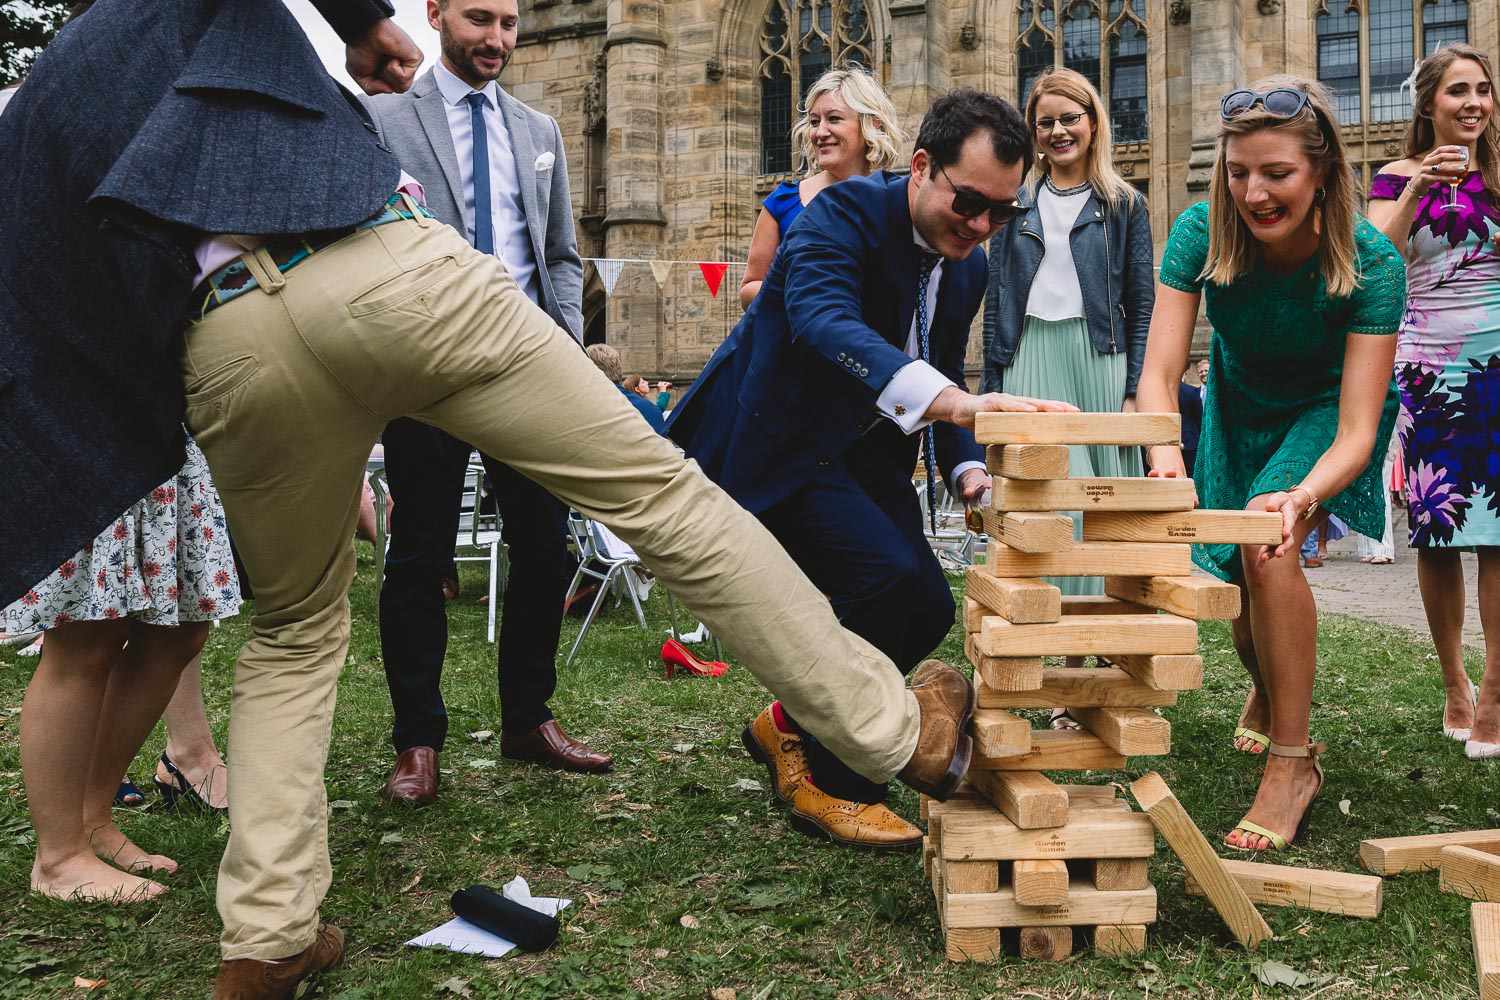 Fun photo of guests playing giant jenga lawn games and one guest is trying to kick the jenga over whilst the others try to keep it tall at fun 92 Burton Road Sheffield wedding